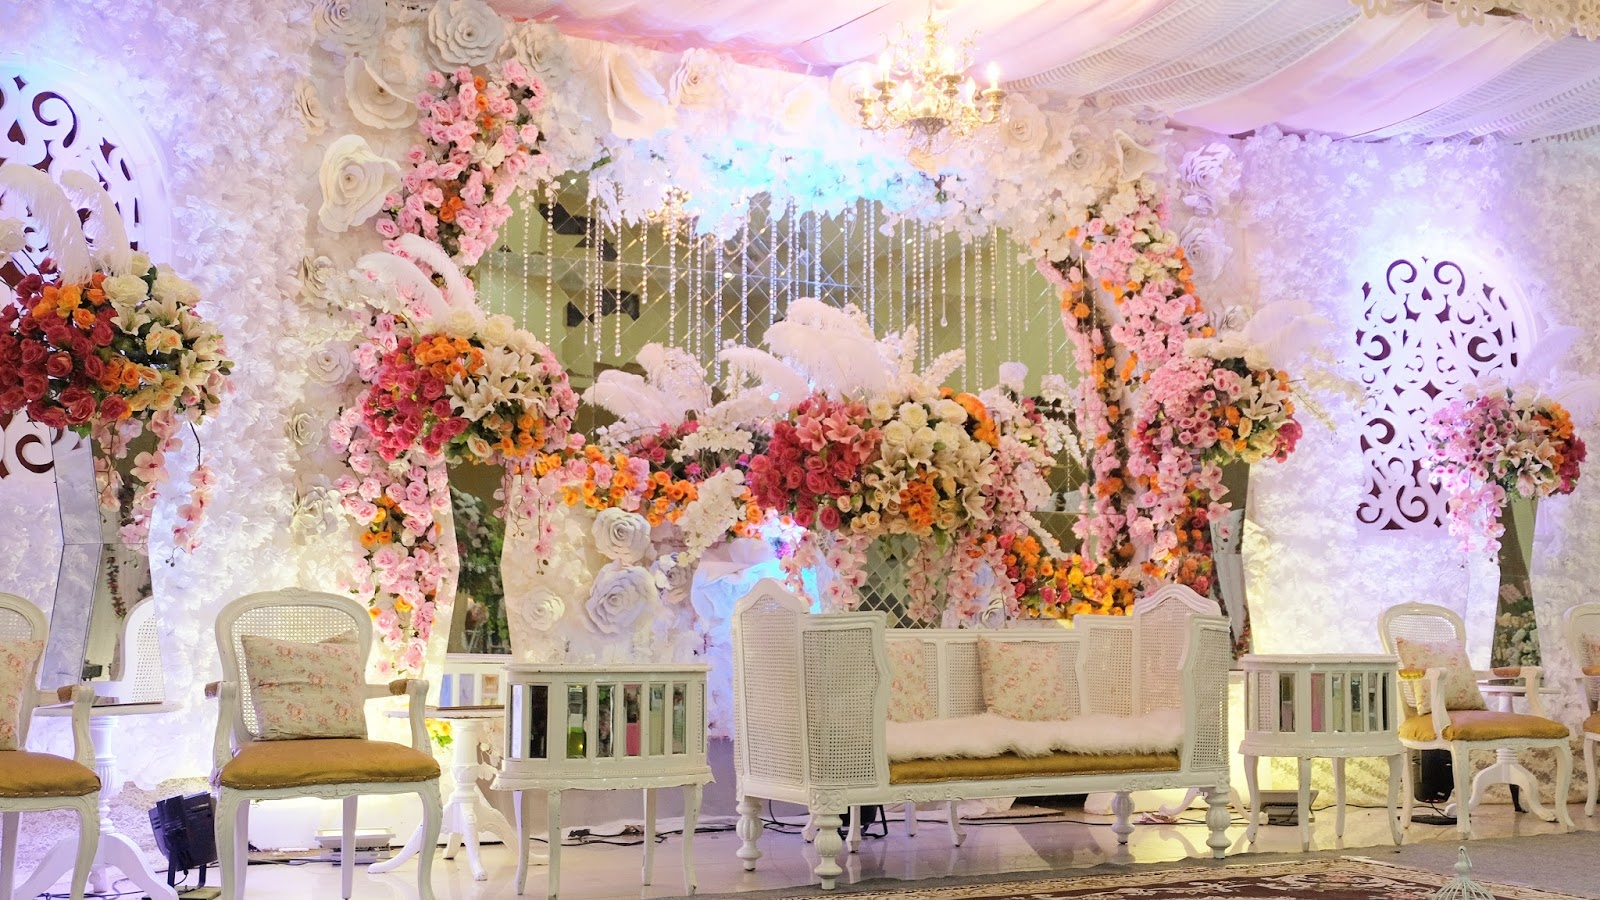 Daf wedding decoration bandung image collections wedding dress wedding decoration murah di bandung choice image wedding dress wedding decoration murah di bandung gallery wedding junglespirit Choice Image